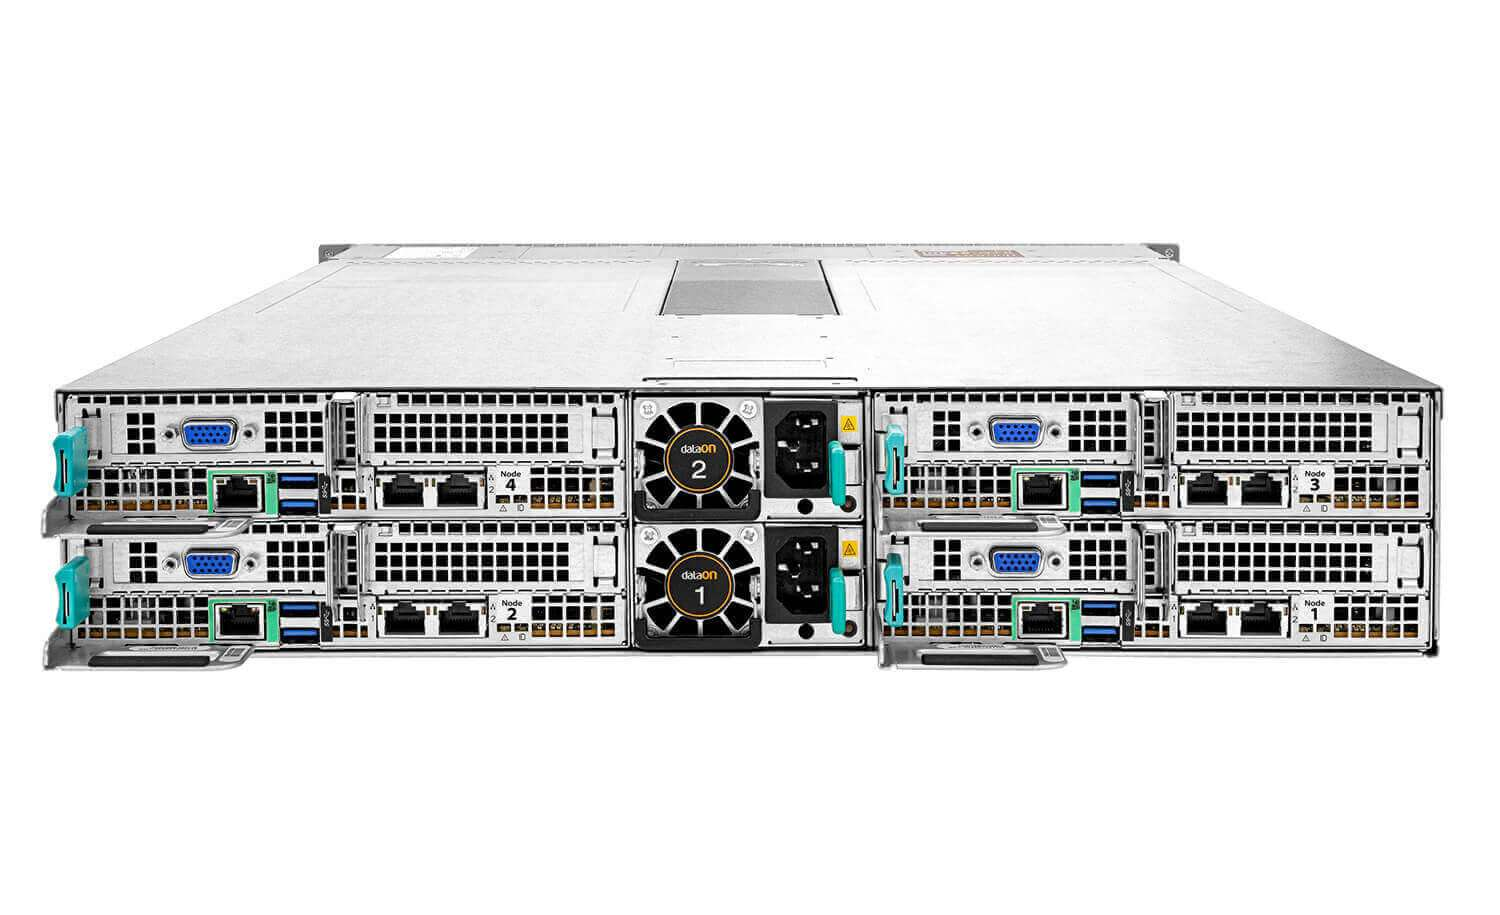 allsystems-producten-hyperconverged-systems-DataON_S2D_5240i_Rear_View